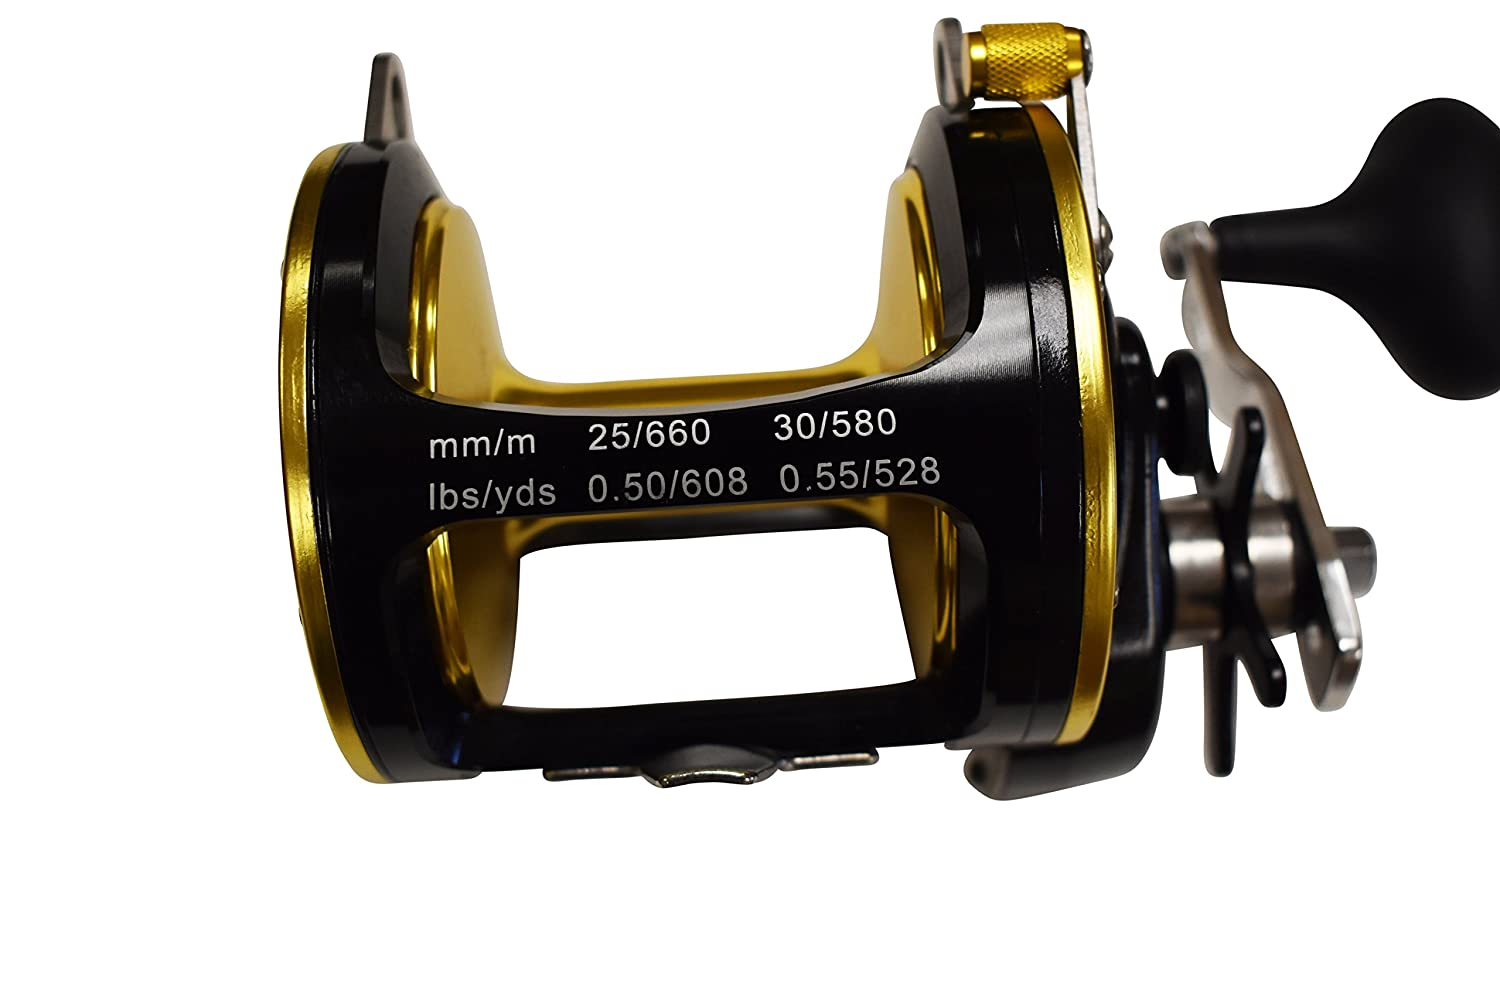 Offshore釣りリールby e-lusion 50 lb。クラス   B077H4FH51